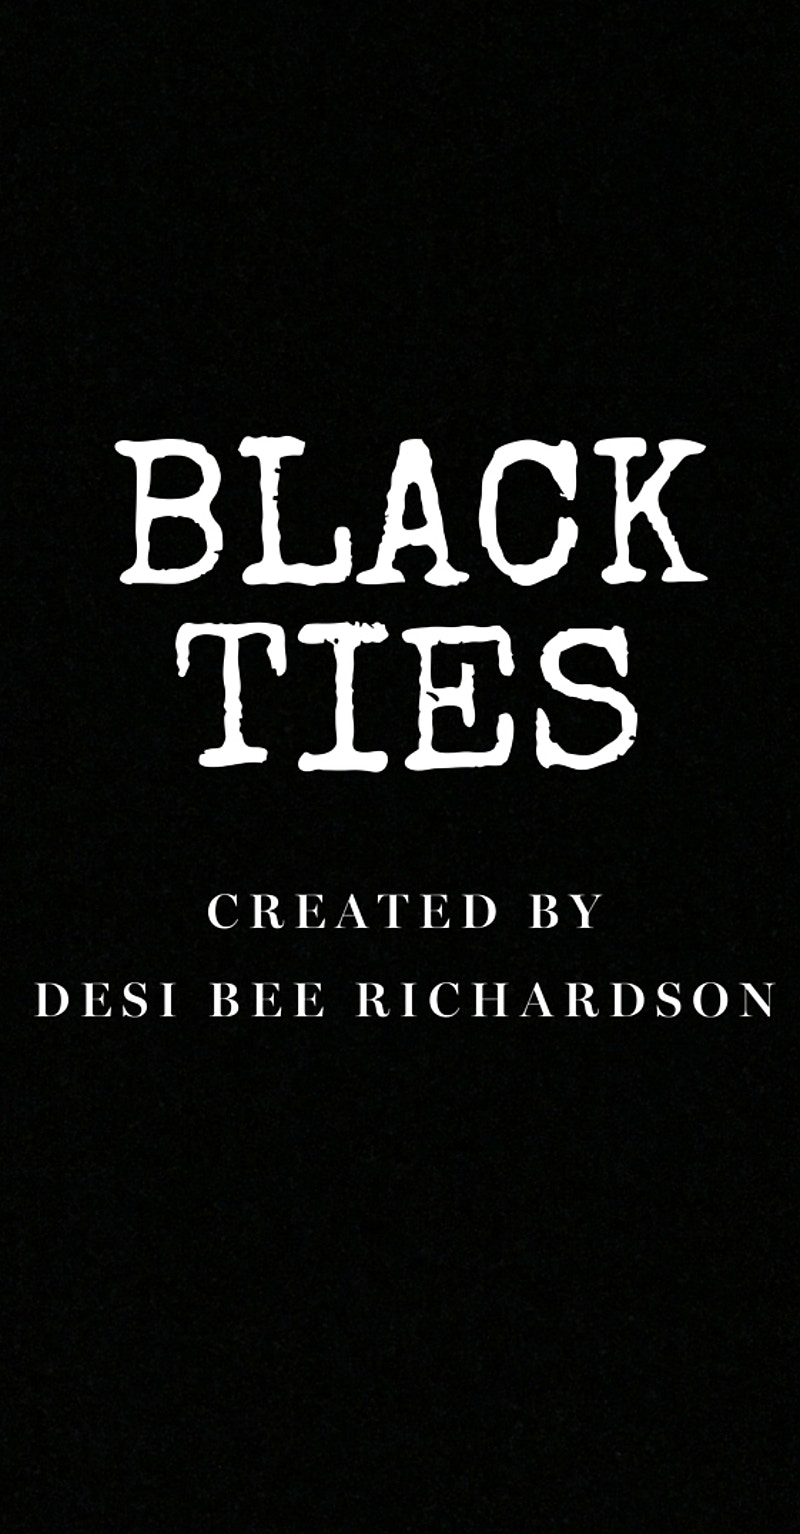 Black Ties - DesiBeeRichardson